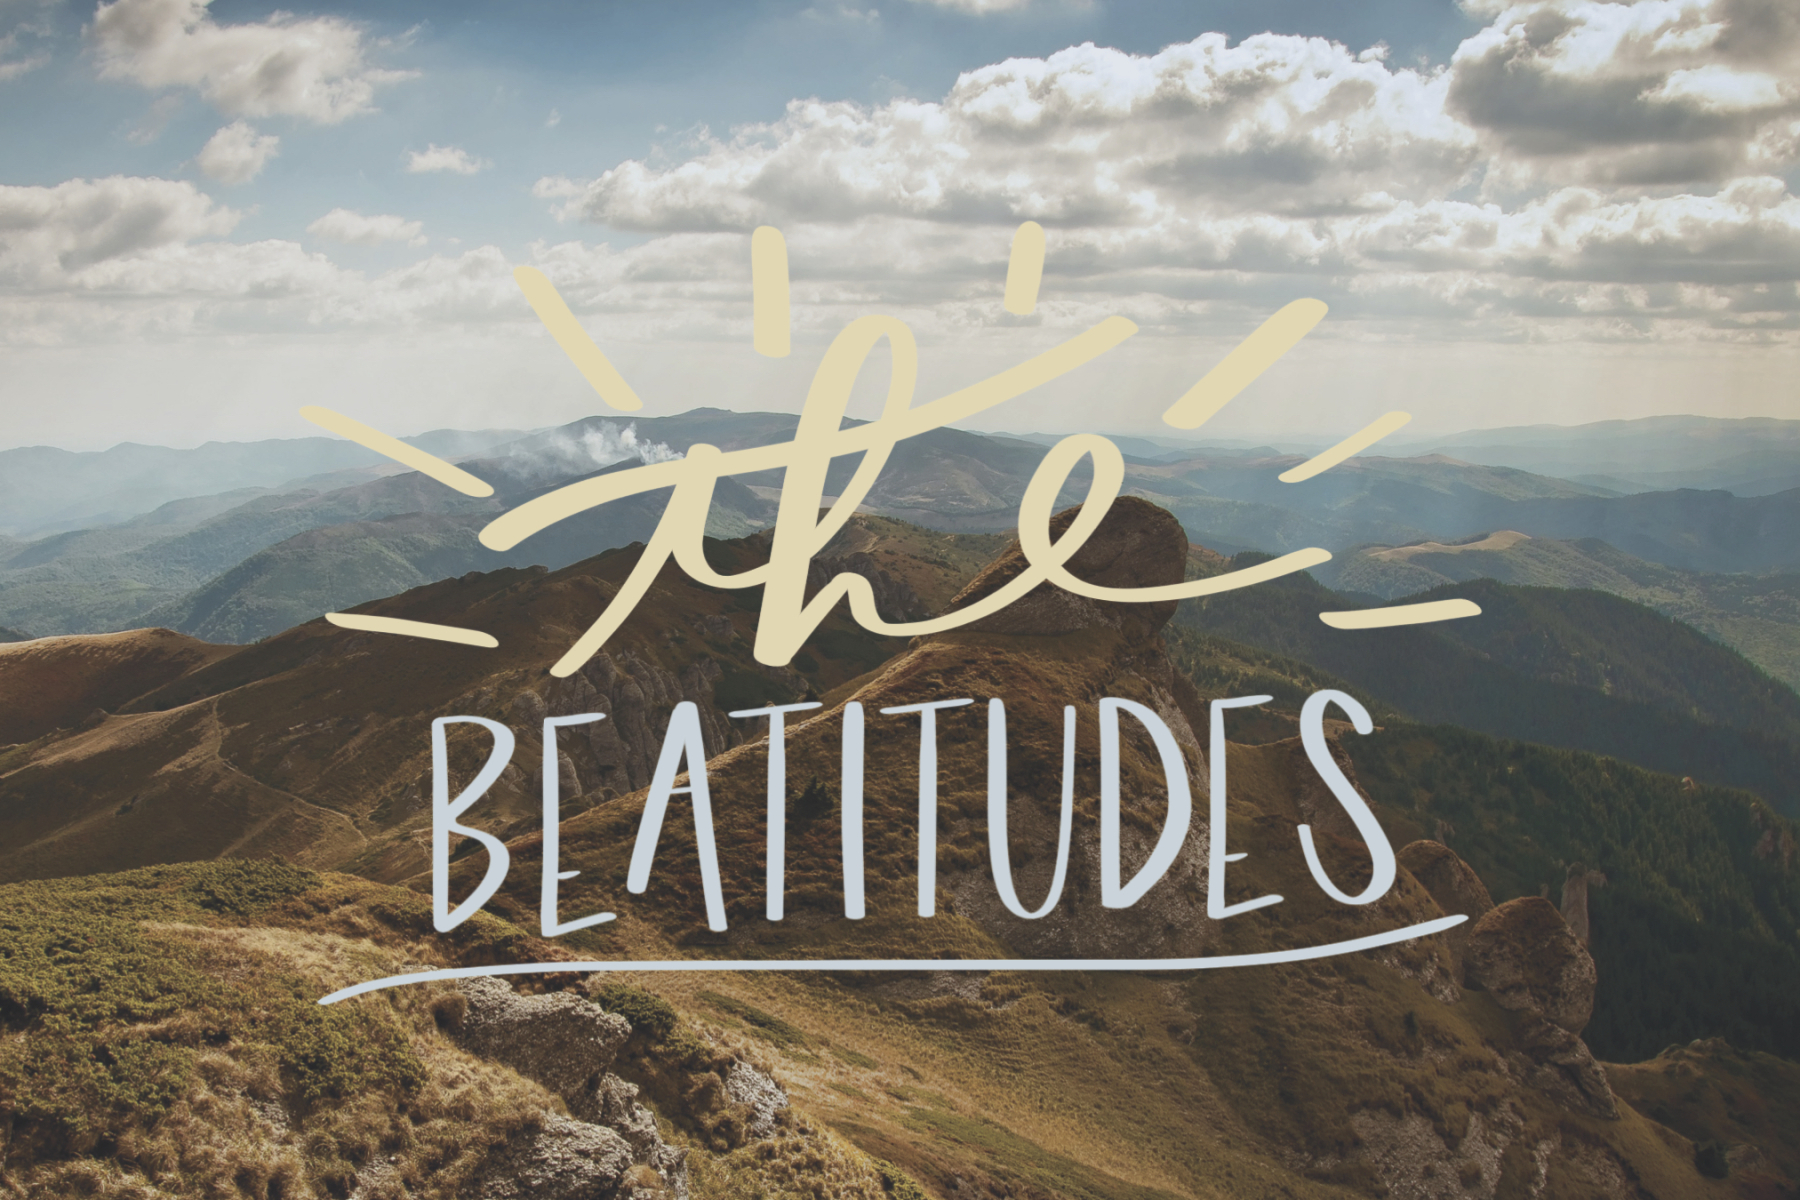 The Beatitudes – Ipswich Catholic Community